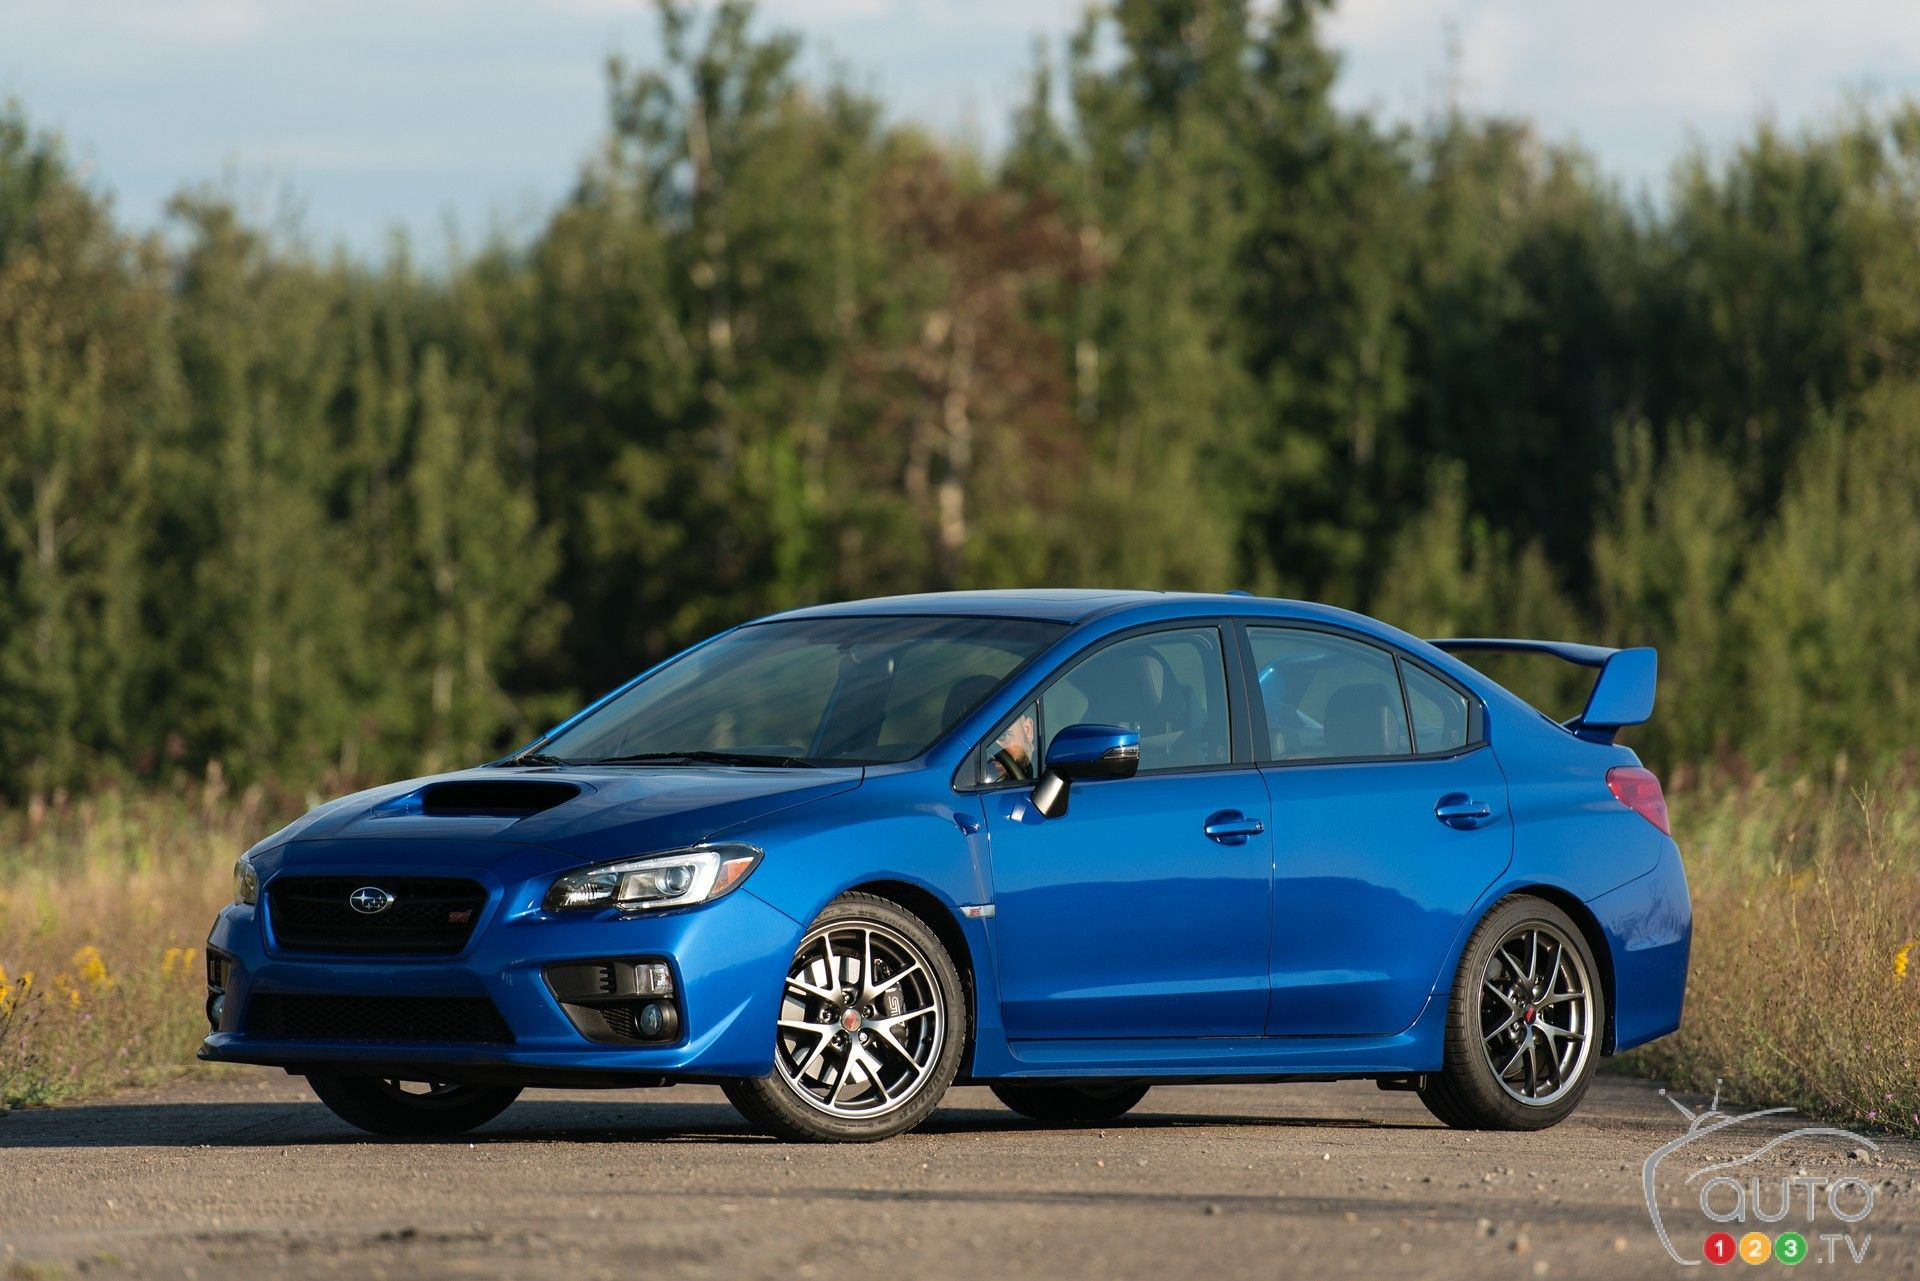 2016 subaru wrx sti pictures the 2016 wrx sti the latest in a long line of legendary road cars with serious race credentials